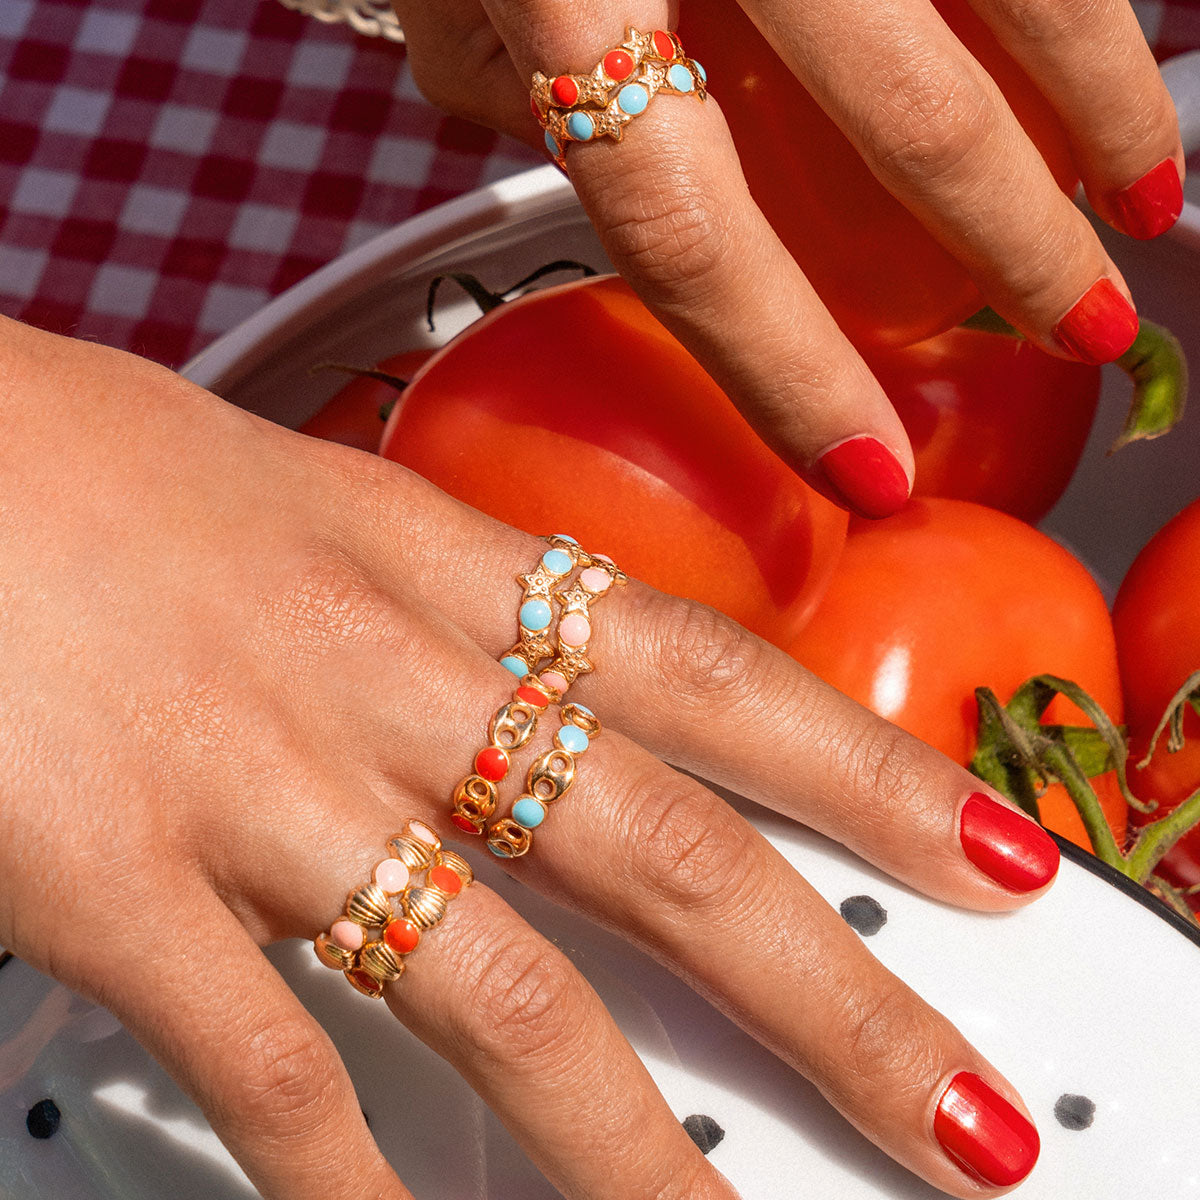 Rings - Ring - Enameled Cabochon Coral Dots and Marine Link - 2 | Rue des Mille